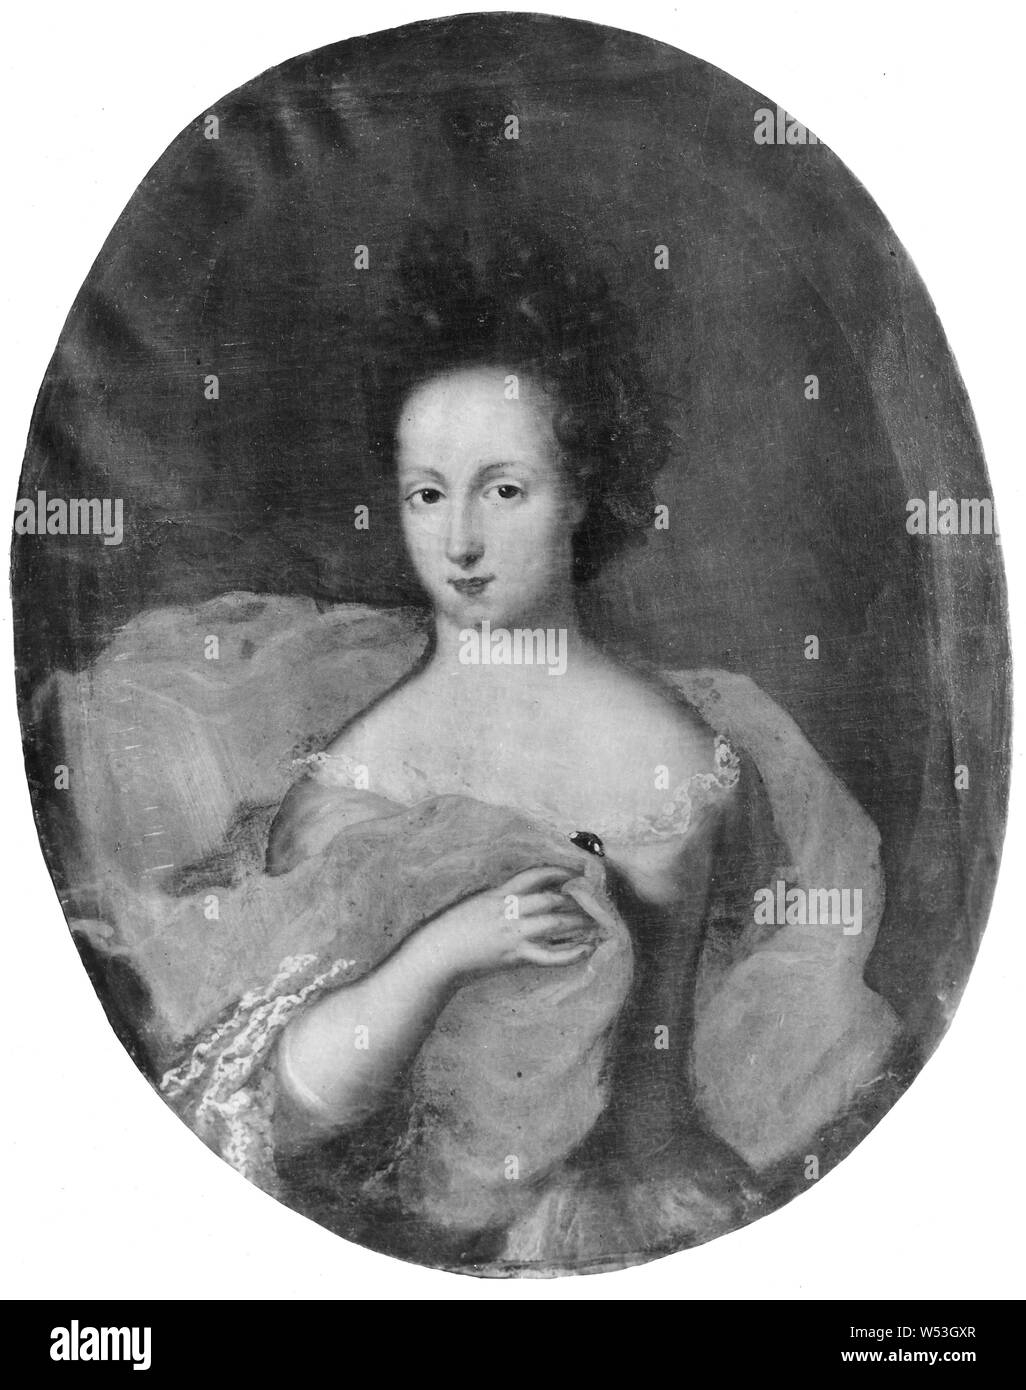 Princess Hedvig Sofia, Hedvig Sofia, 1681-1708, Princess of Sweden duchess of Holstein-Gottorp, painting, Hedvig Sophia of Sweden, Oil on canvas, Height, 81 cm (31.8 inches), Width, 64 cm (25.1 inches) Stock Photo